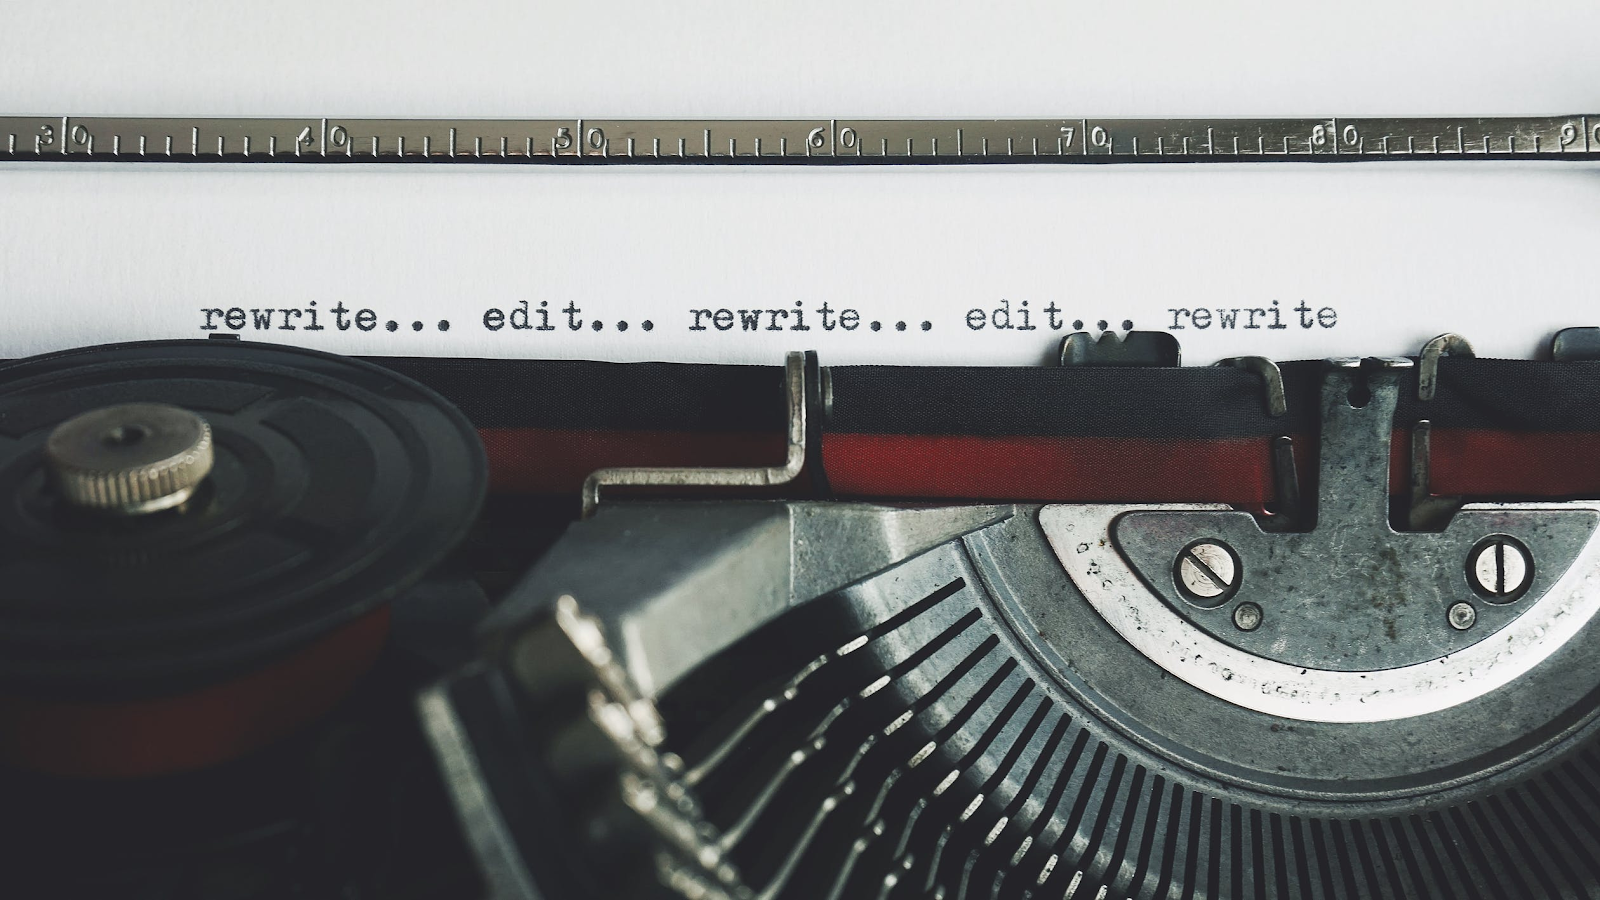 A type writer for a fiction writer.